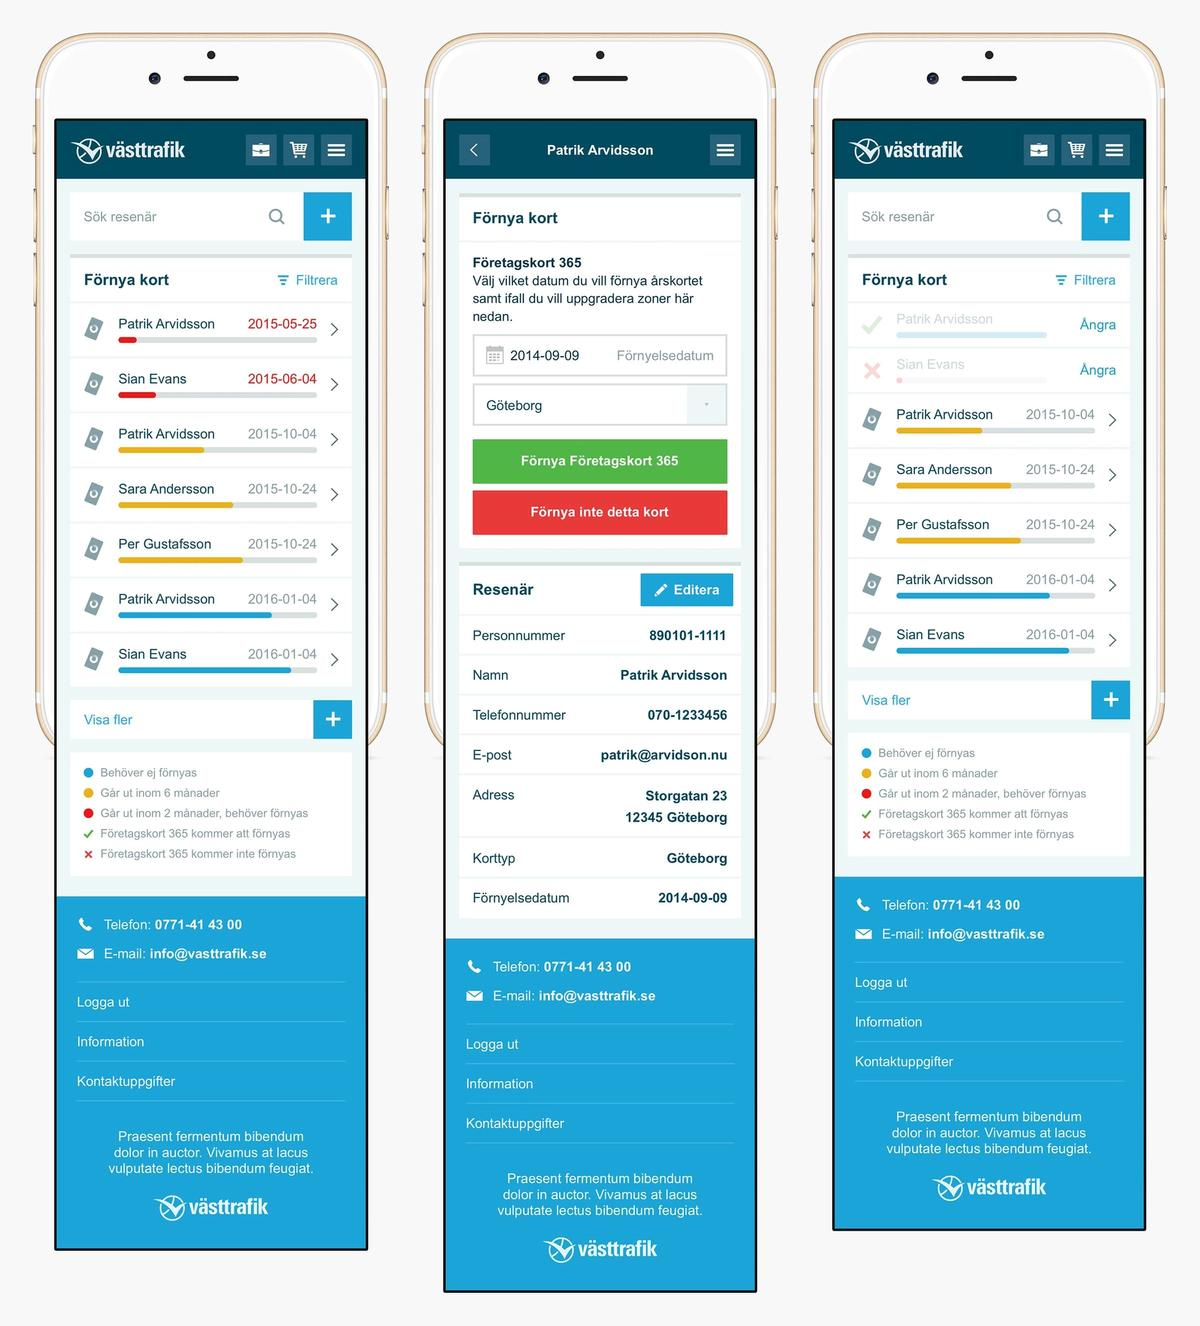 Västtrafik mobile renewal screens